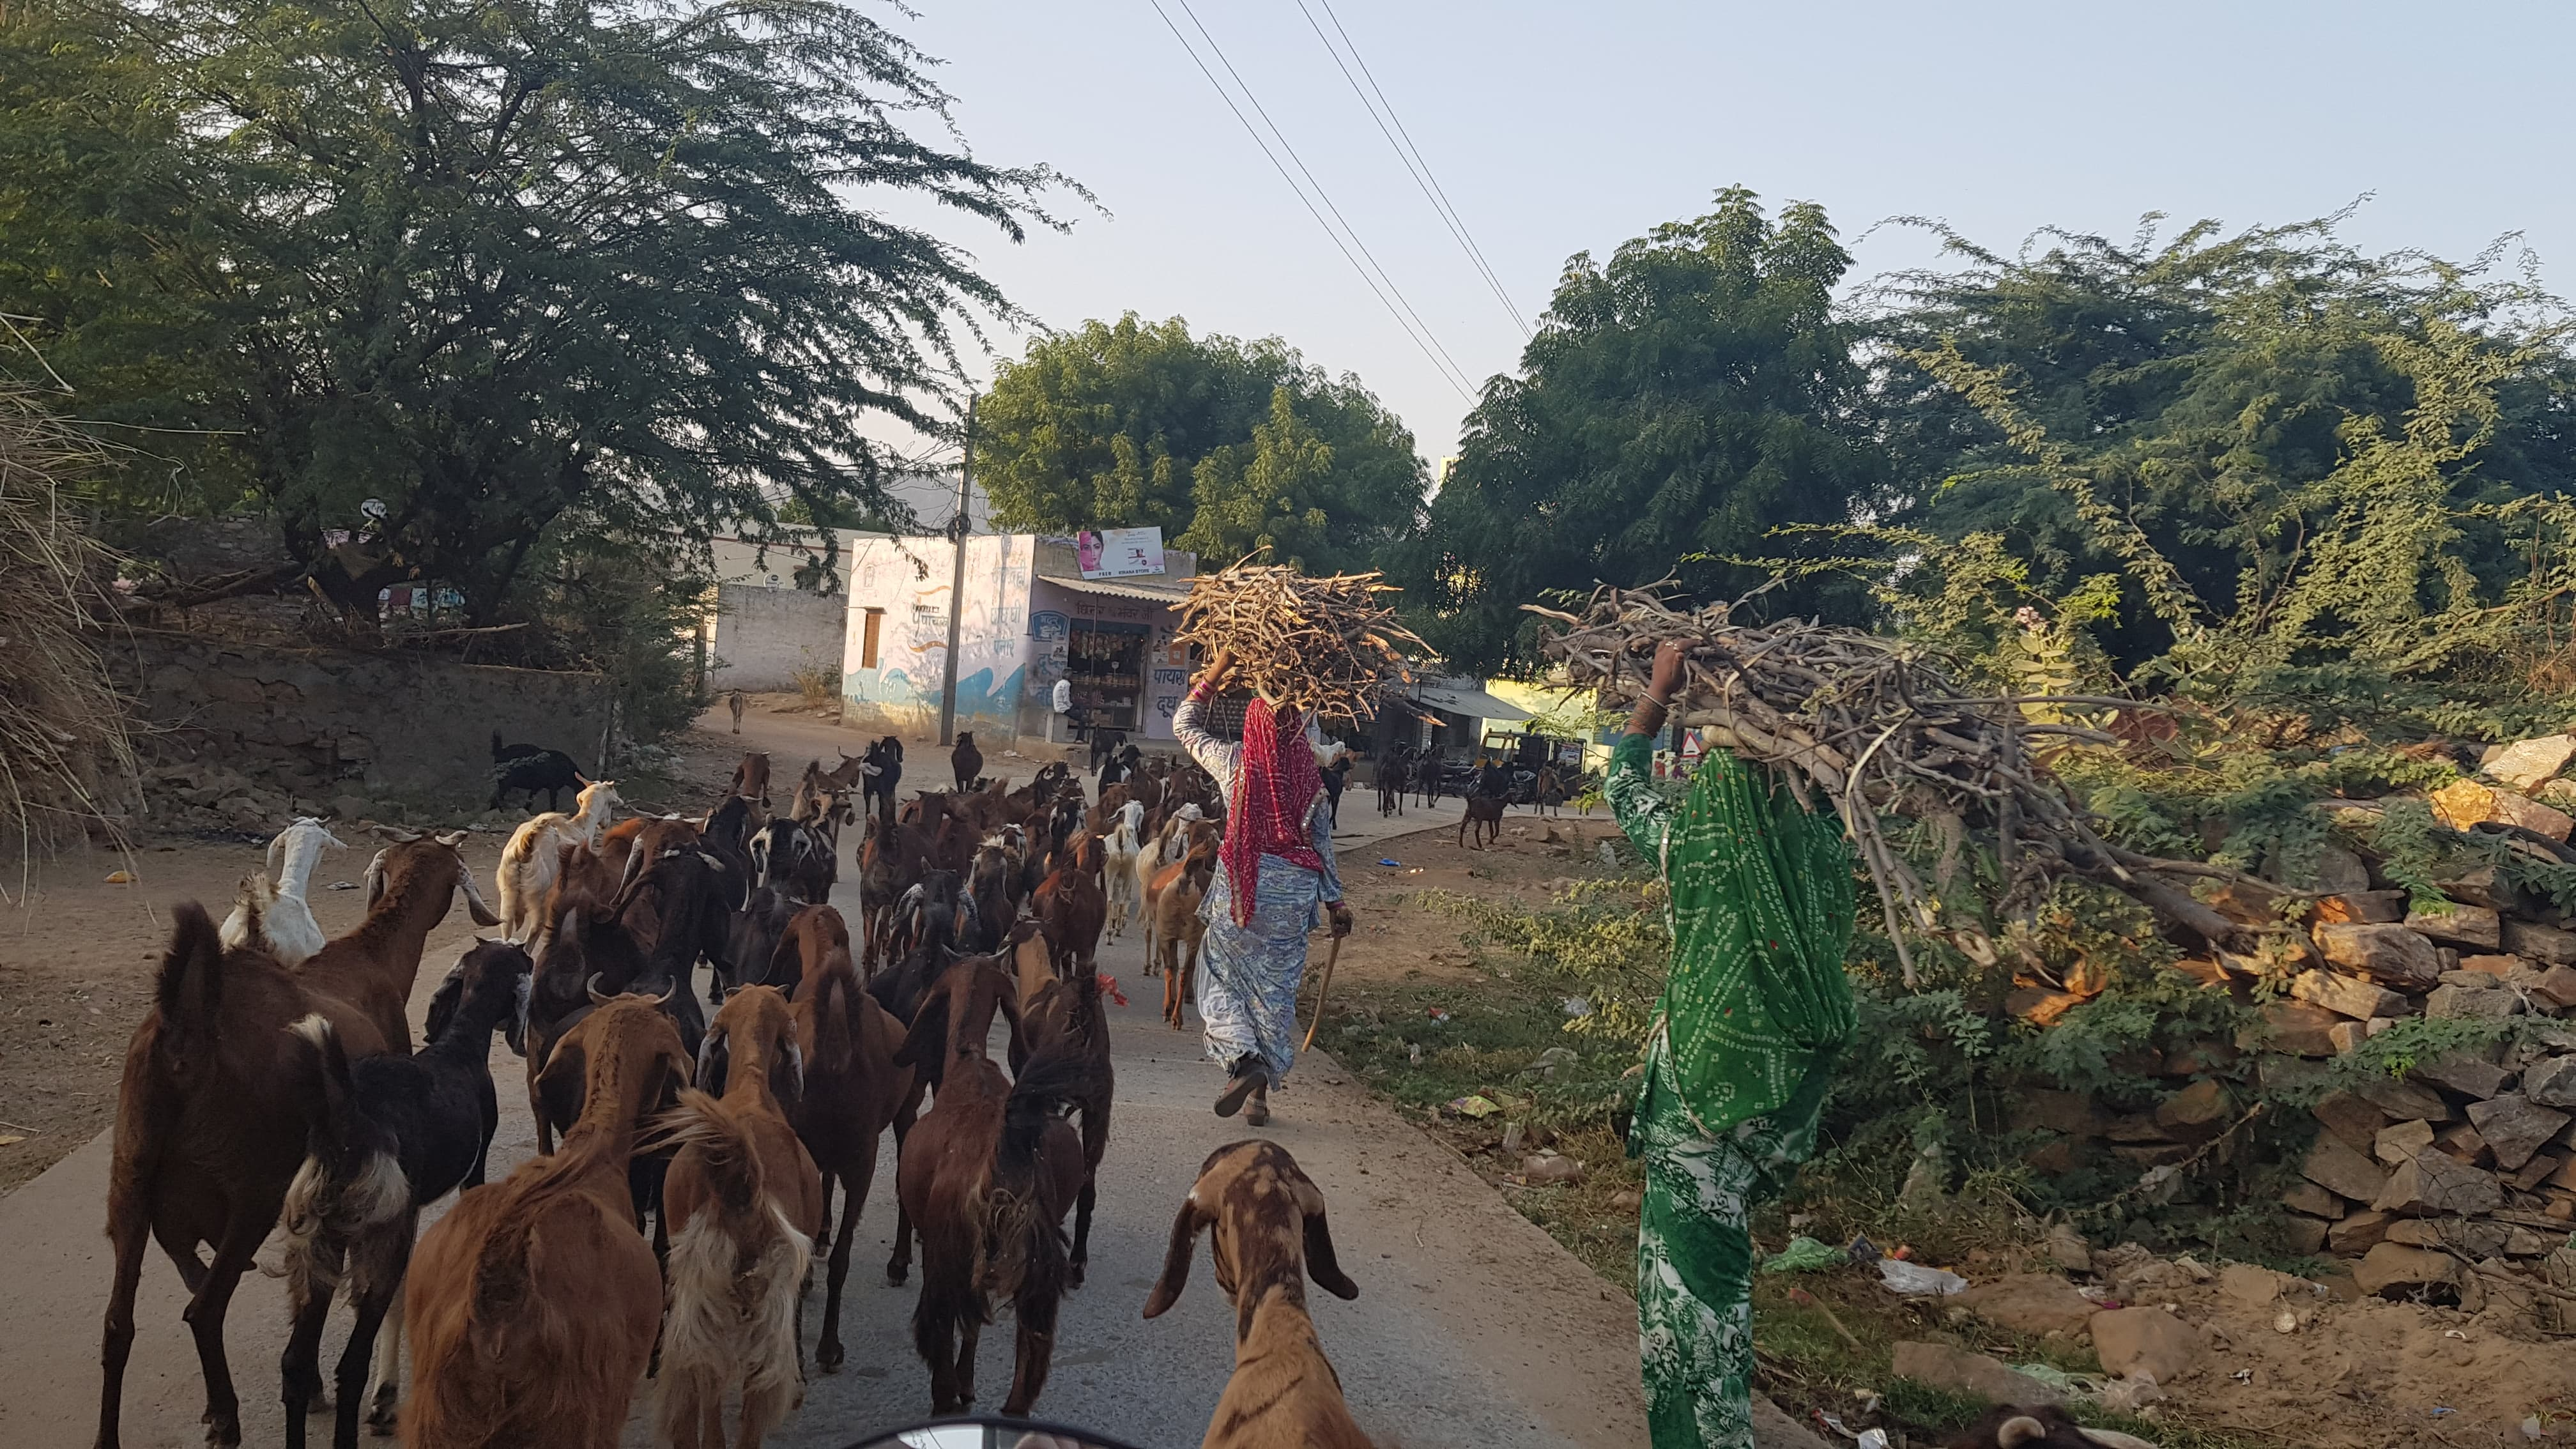 goats on the road in pushkar